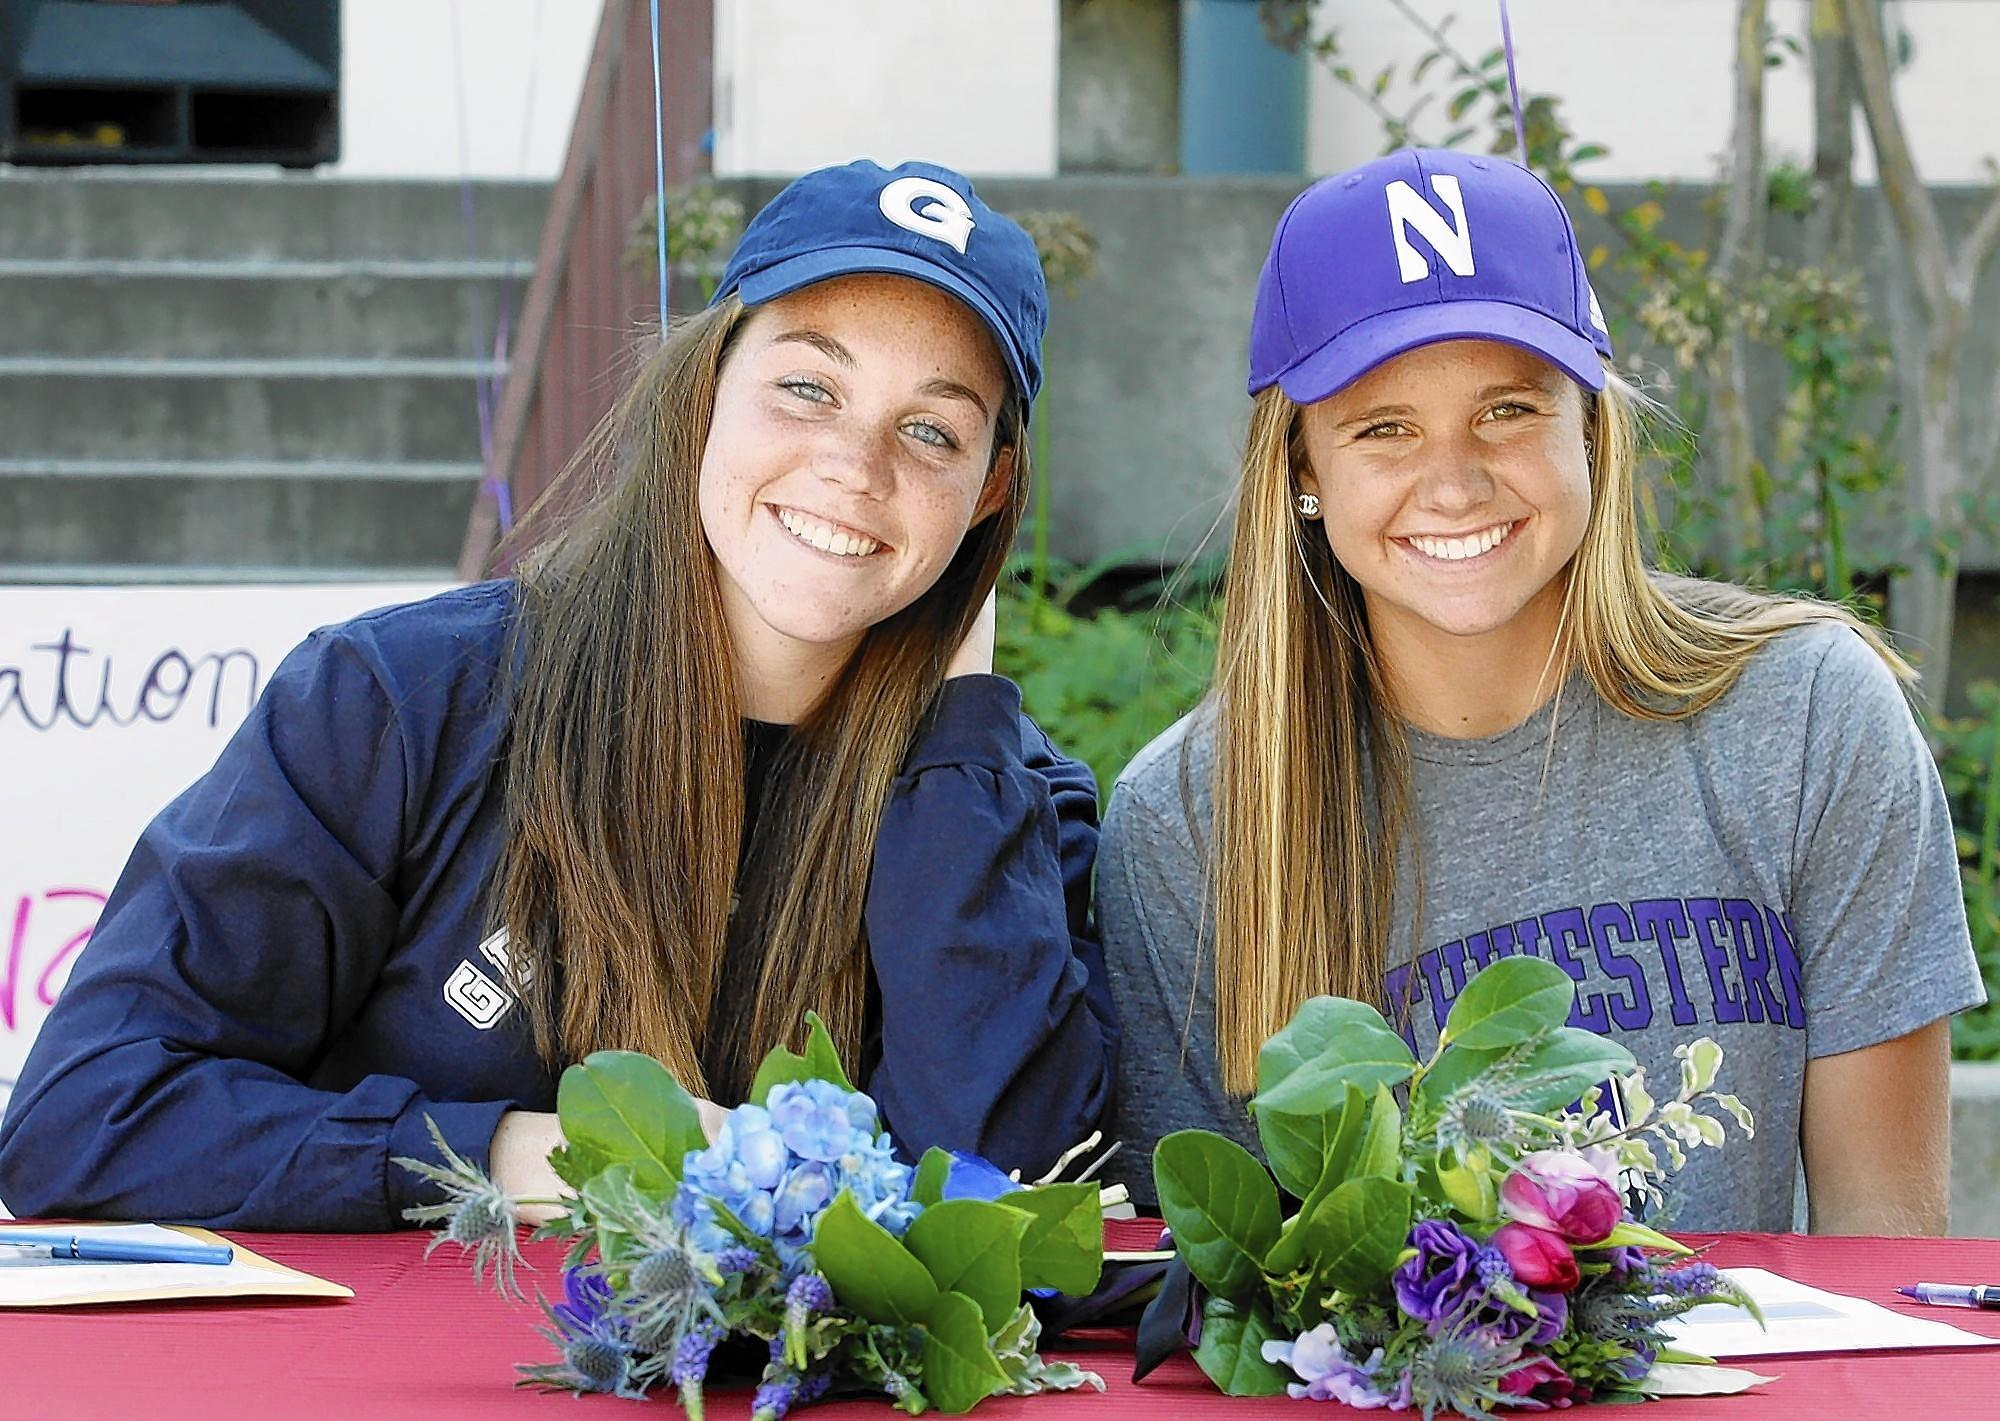 Lauren O'Leary and Anna Edwards smile for the photographers after they signed early letters of intent to for full-ride scholarships they earned for their prowess in softball on Tuesday, November 17, 2010. O'Leary will attend Georgetown in the Fall, and Edwards will attend Northwestern.